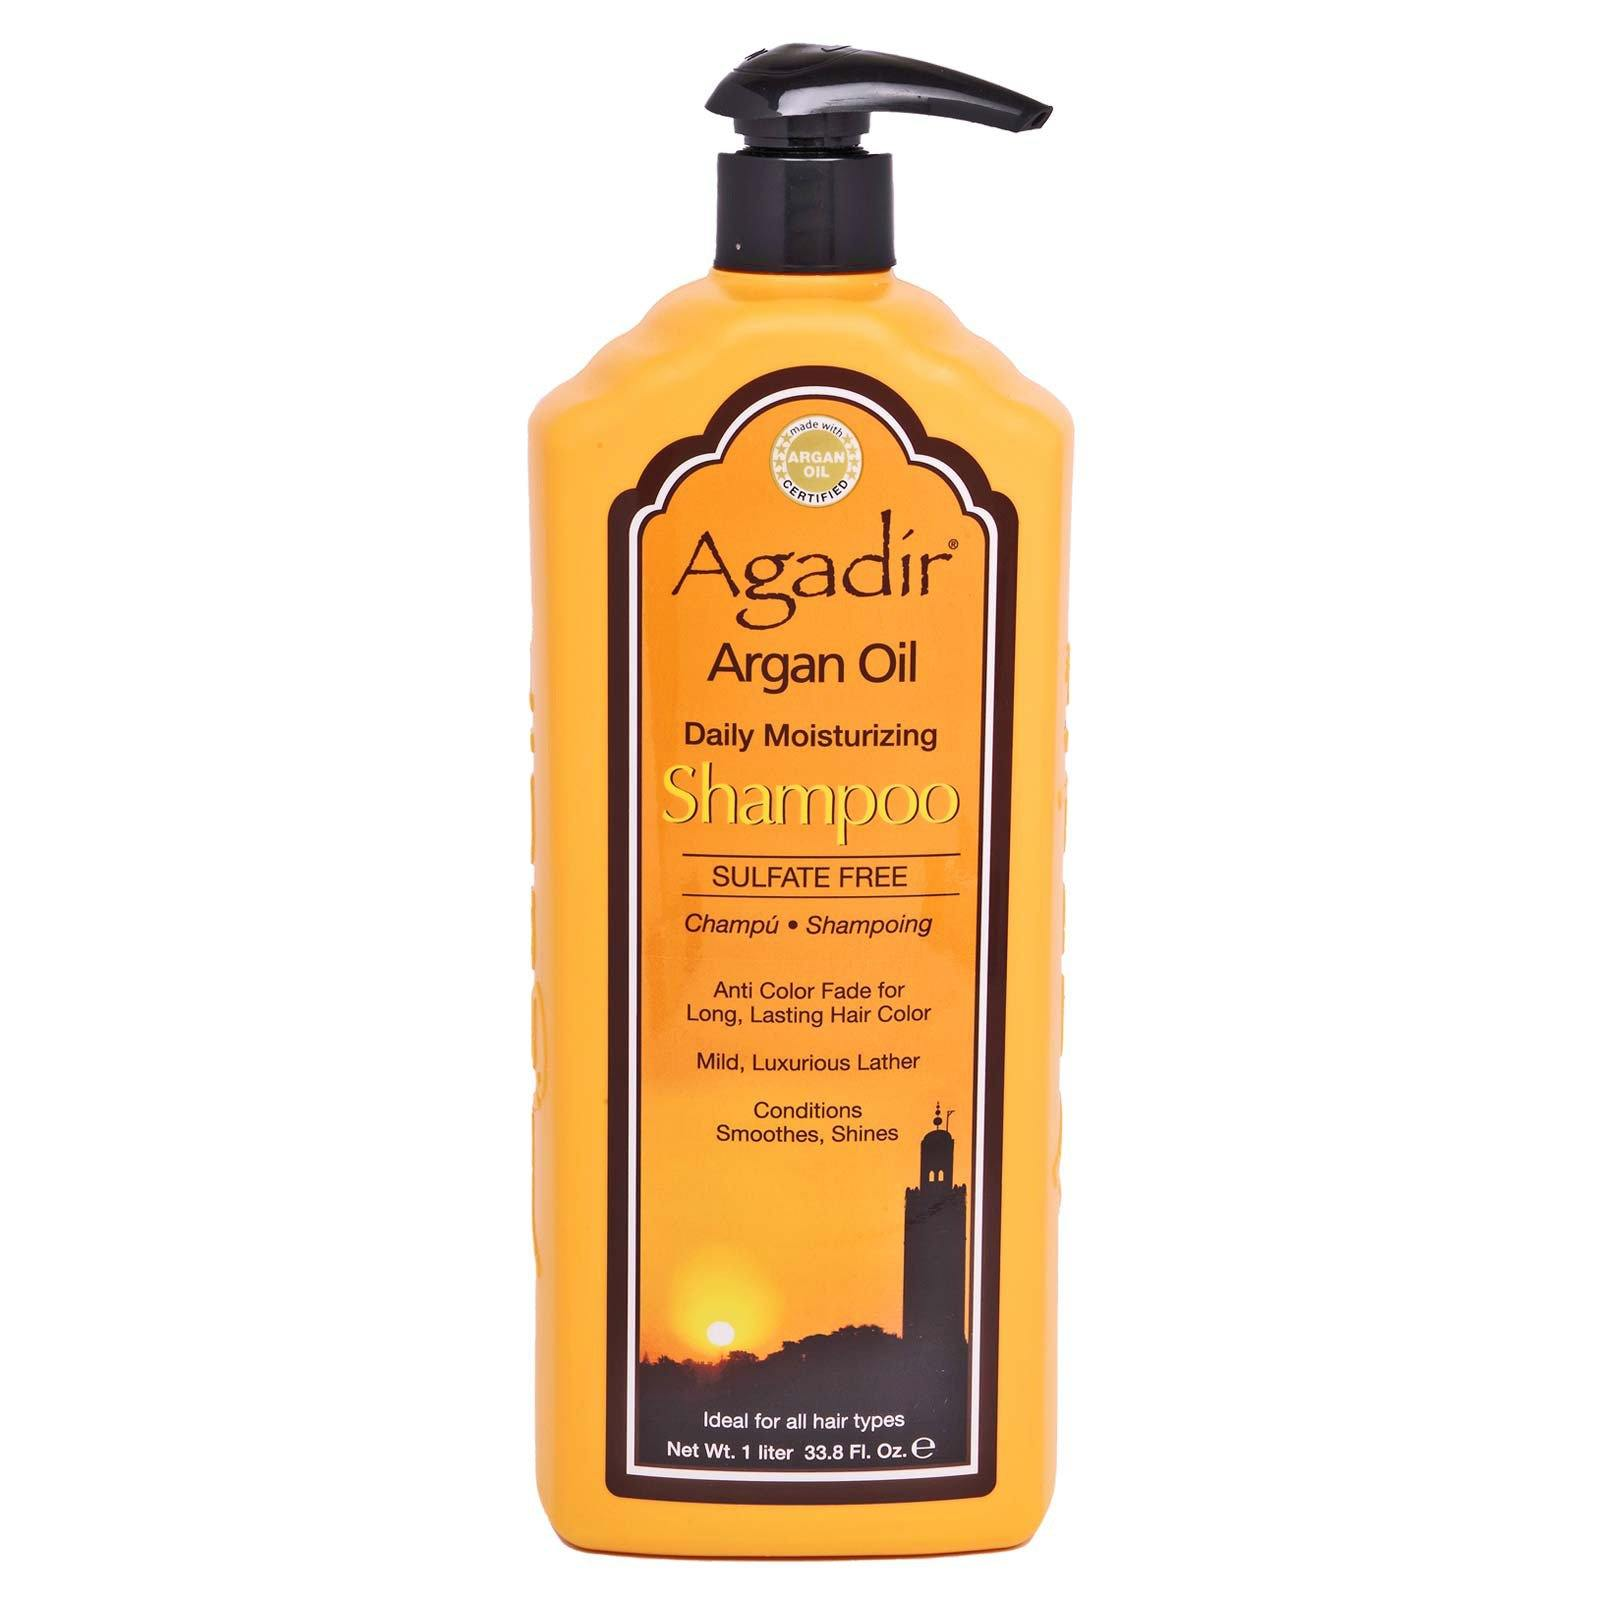 Agadir Argan Oil Daily Moisturizing Shampoo, sulfate free, gentle on color treated hair - (33.8oz) (12/cs)